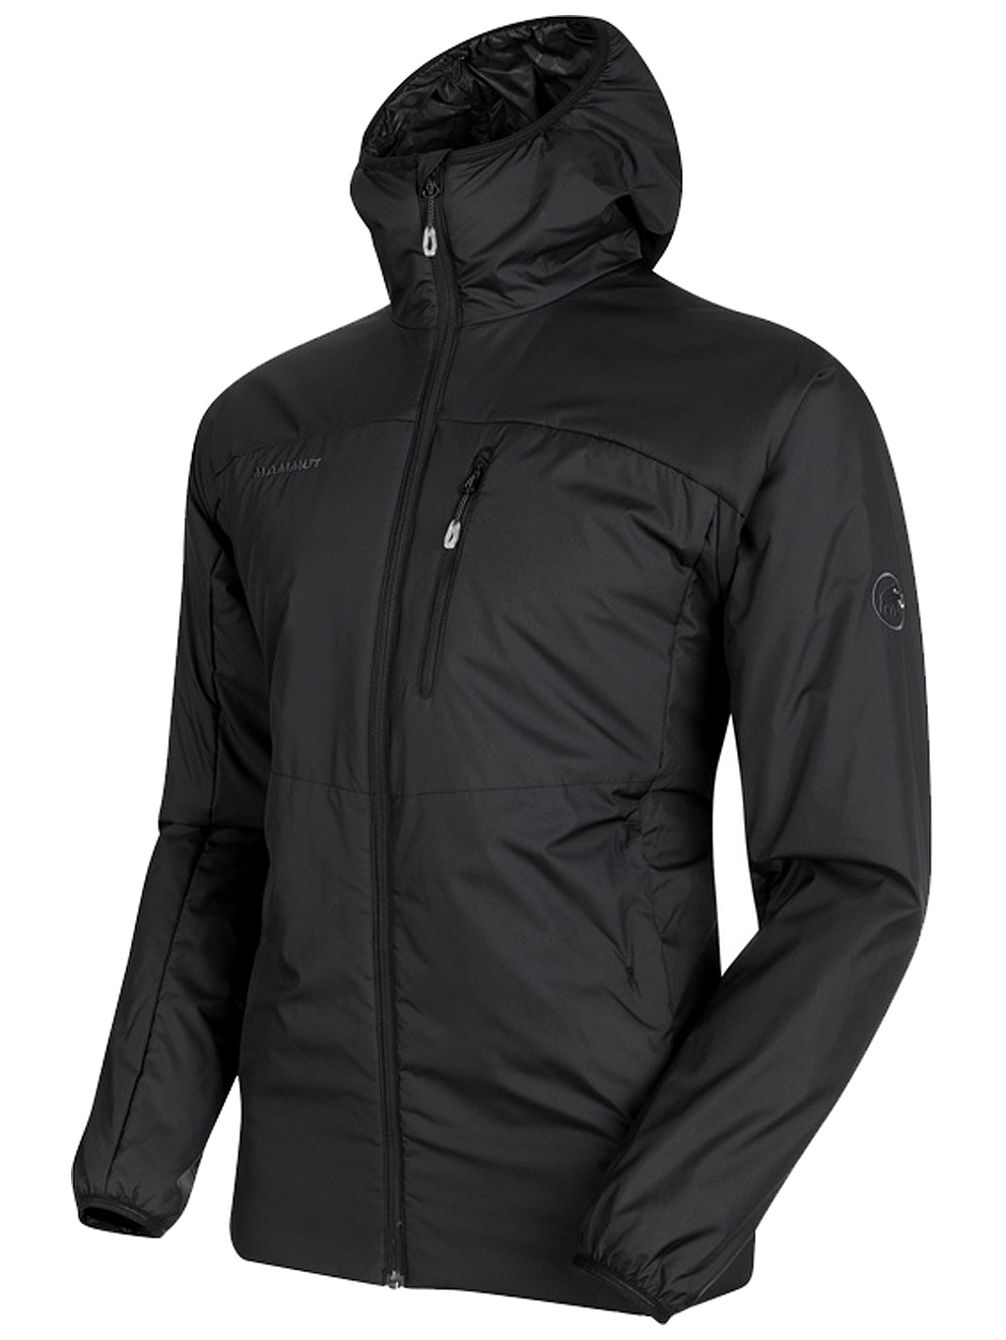 Runbold Advanced In Outdoorjacke